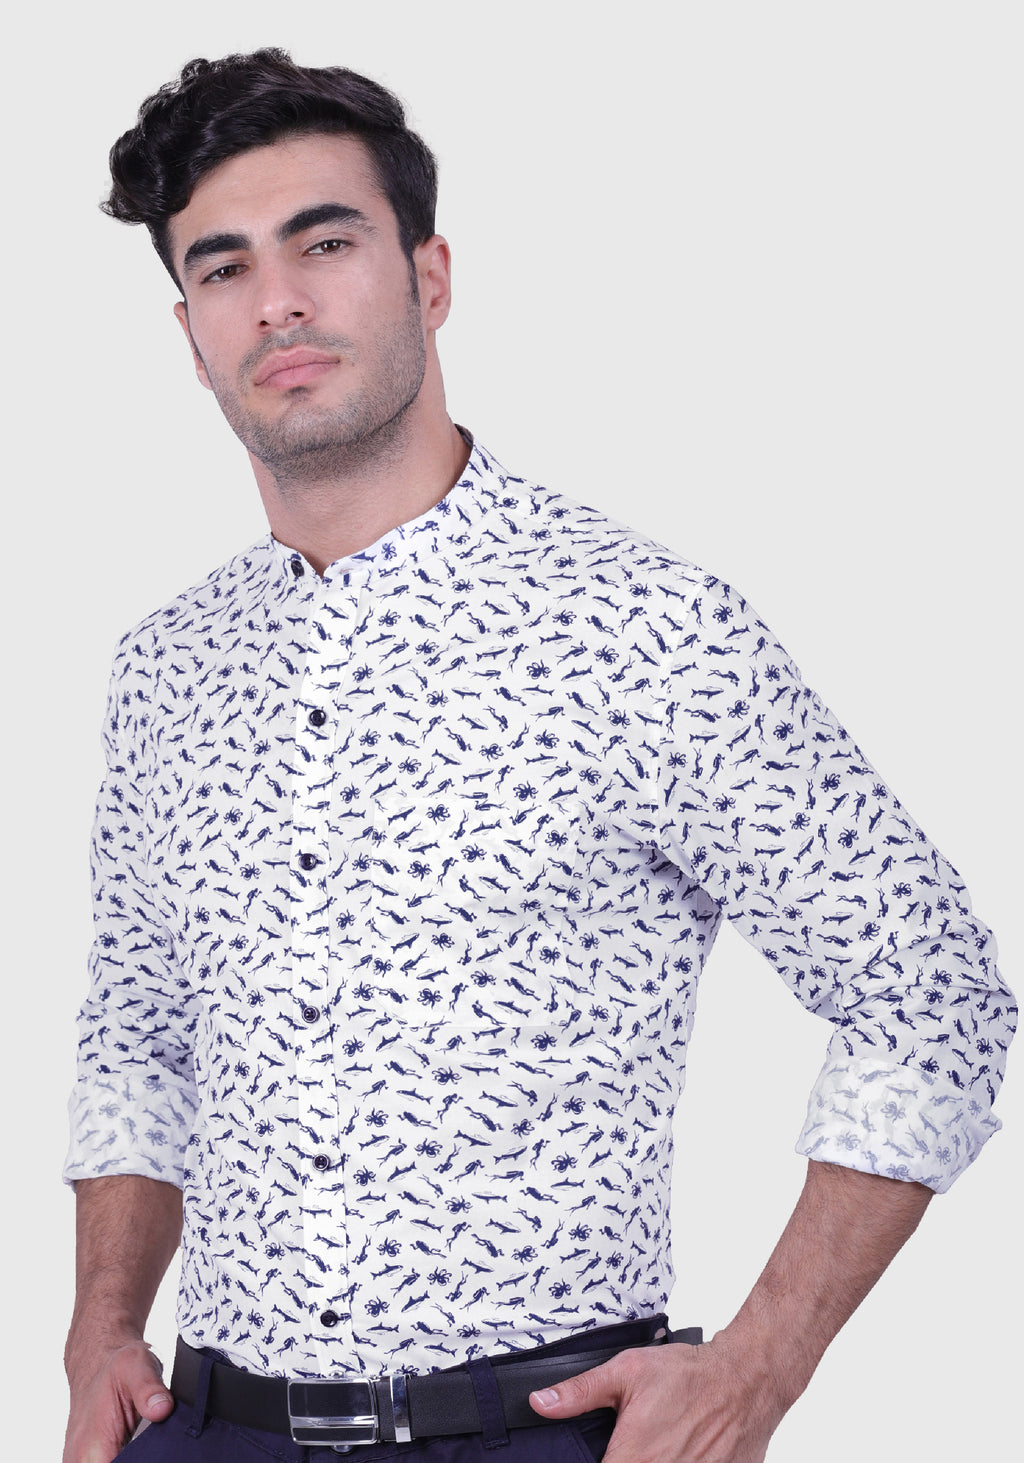 Swirling Ocean White Shirt (Comfortable Slim Fit)